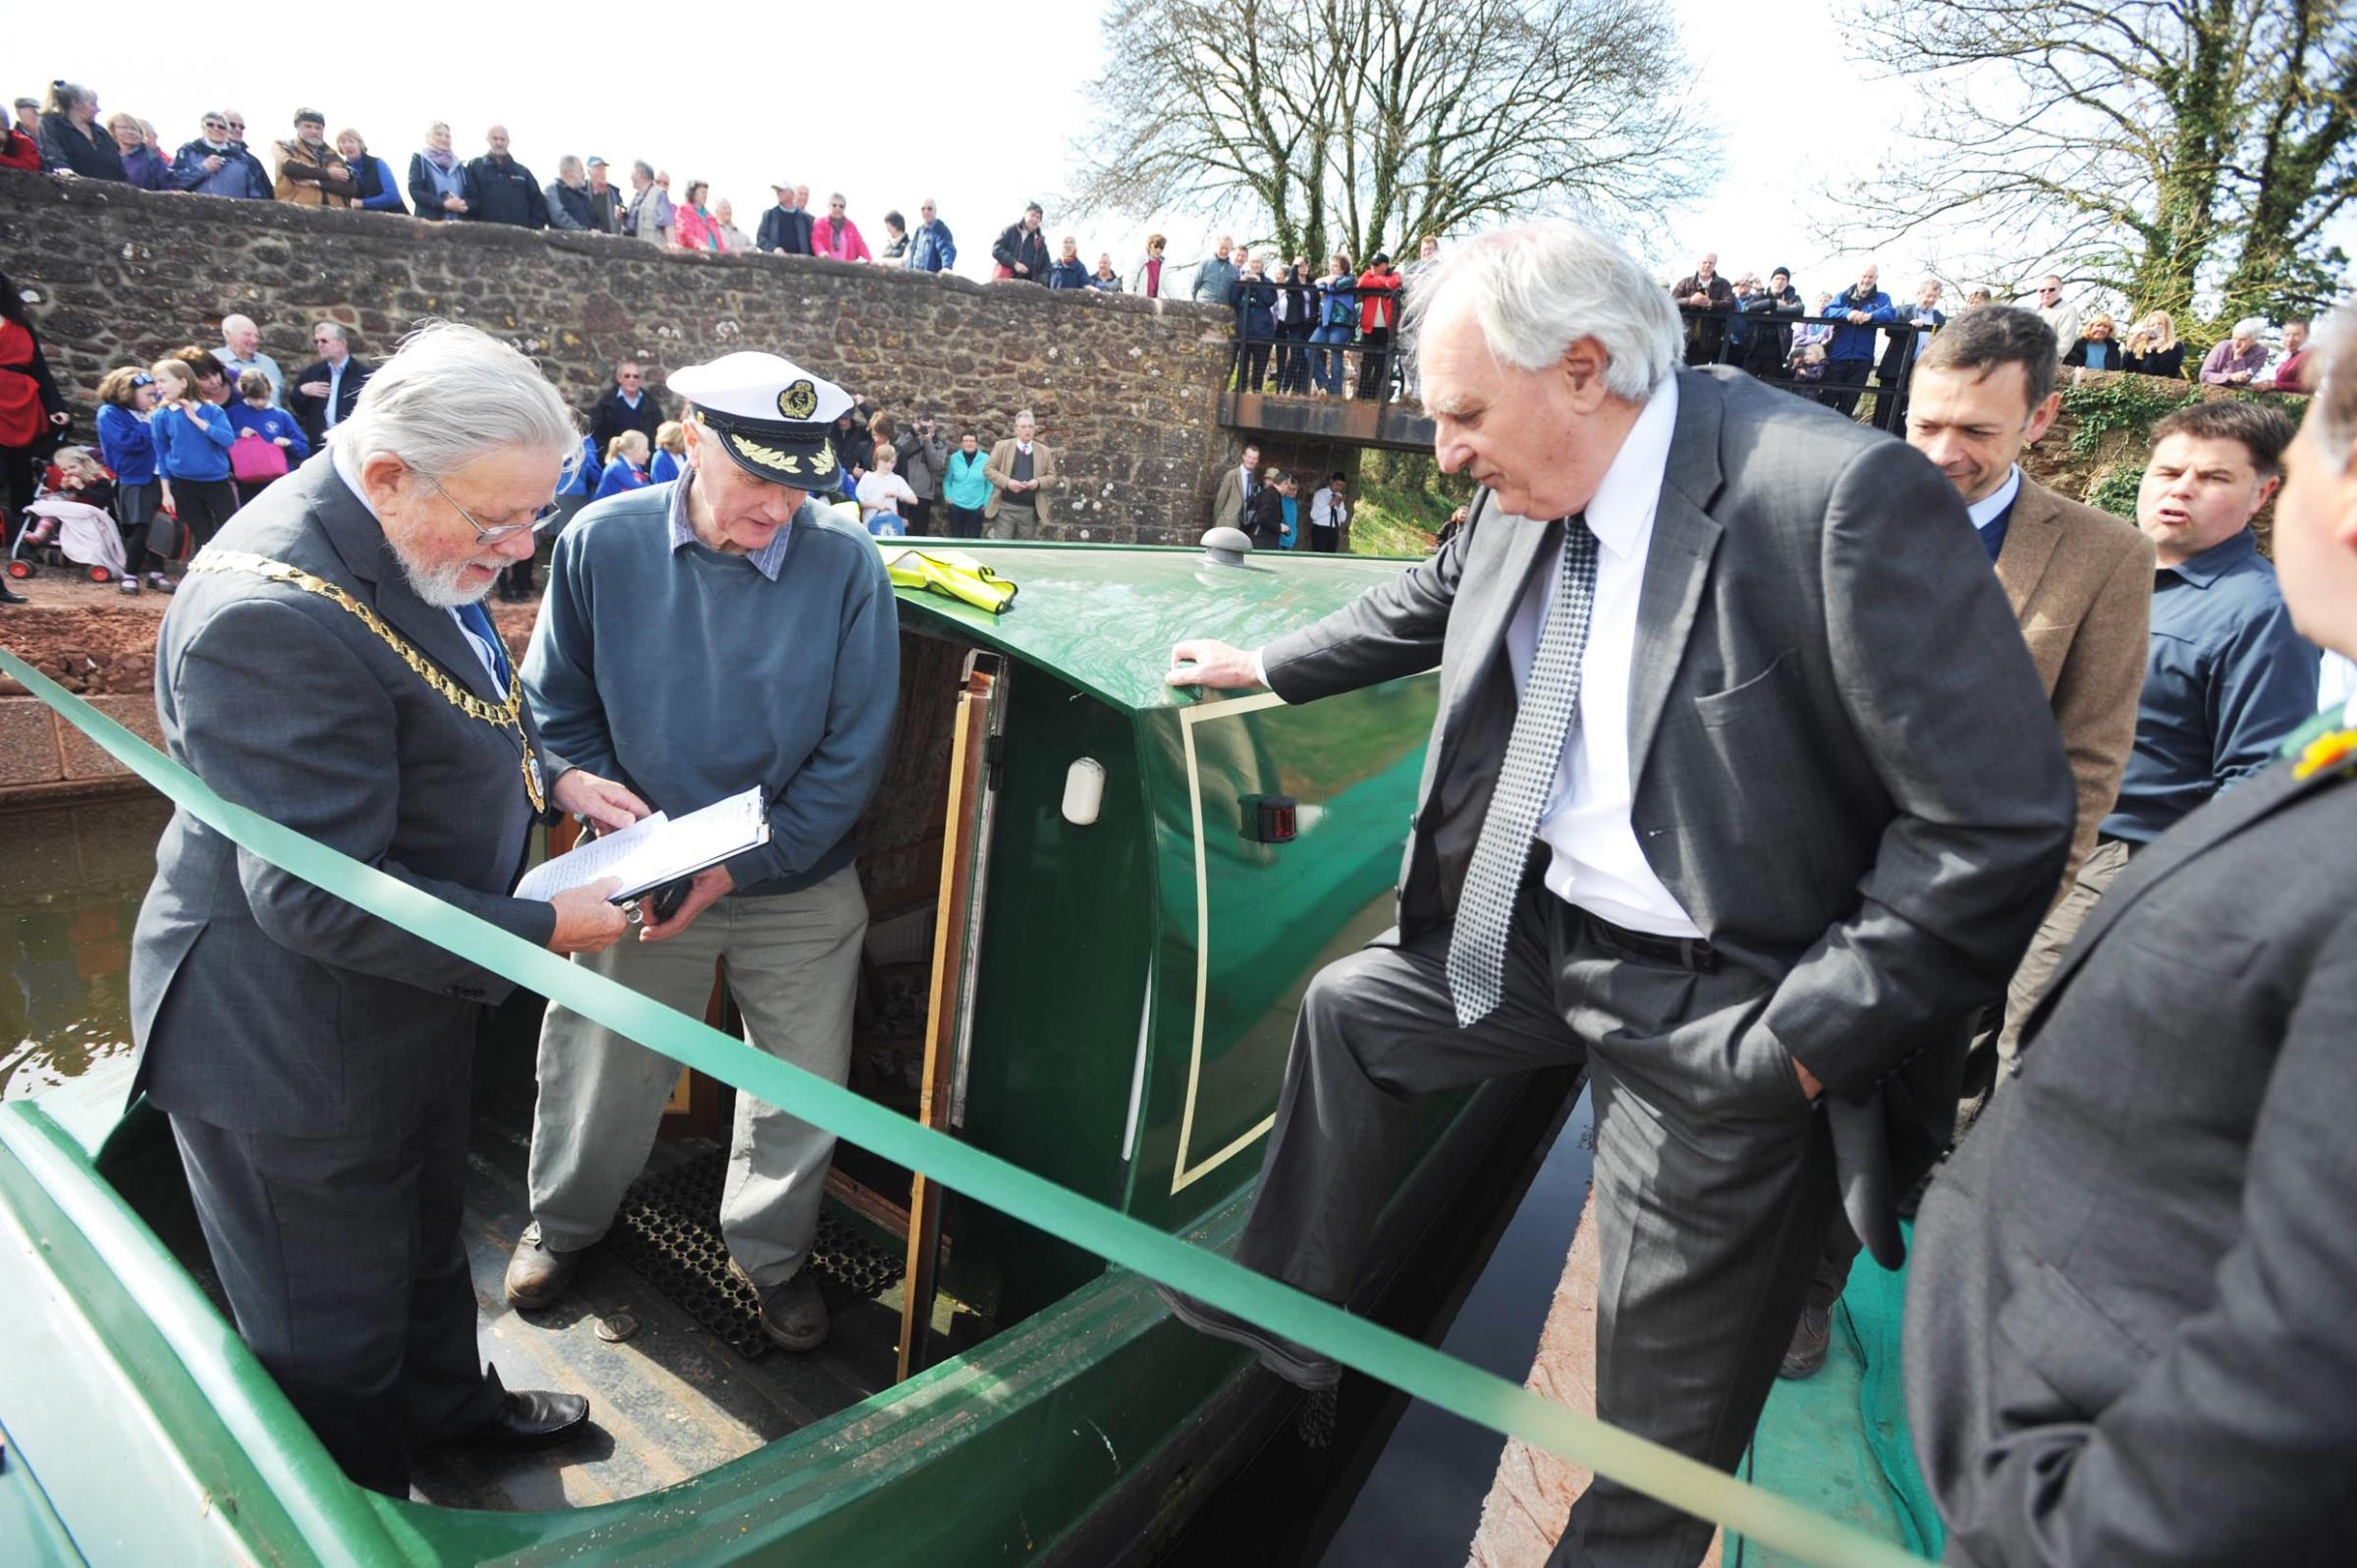 Trailboat festival to mark Grand Western Canal's bicentenary